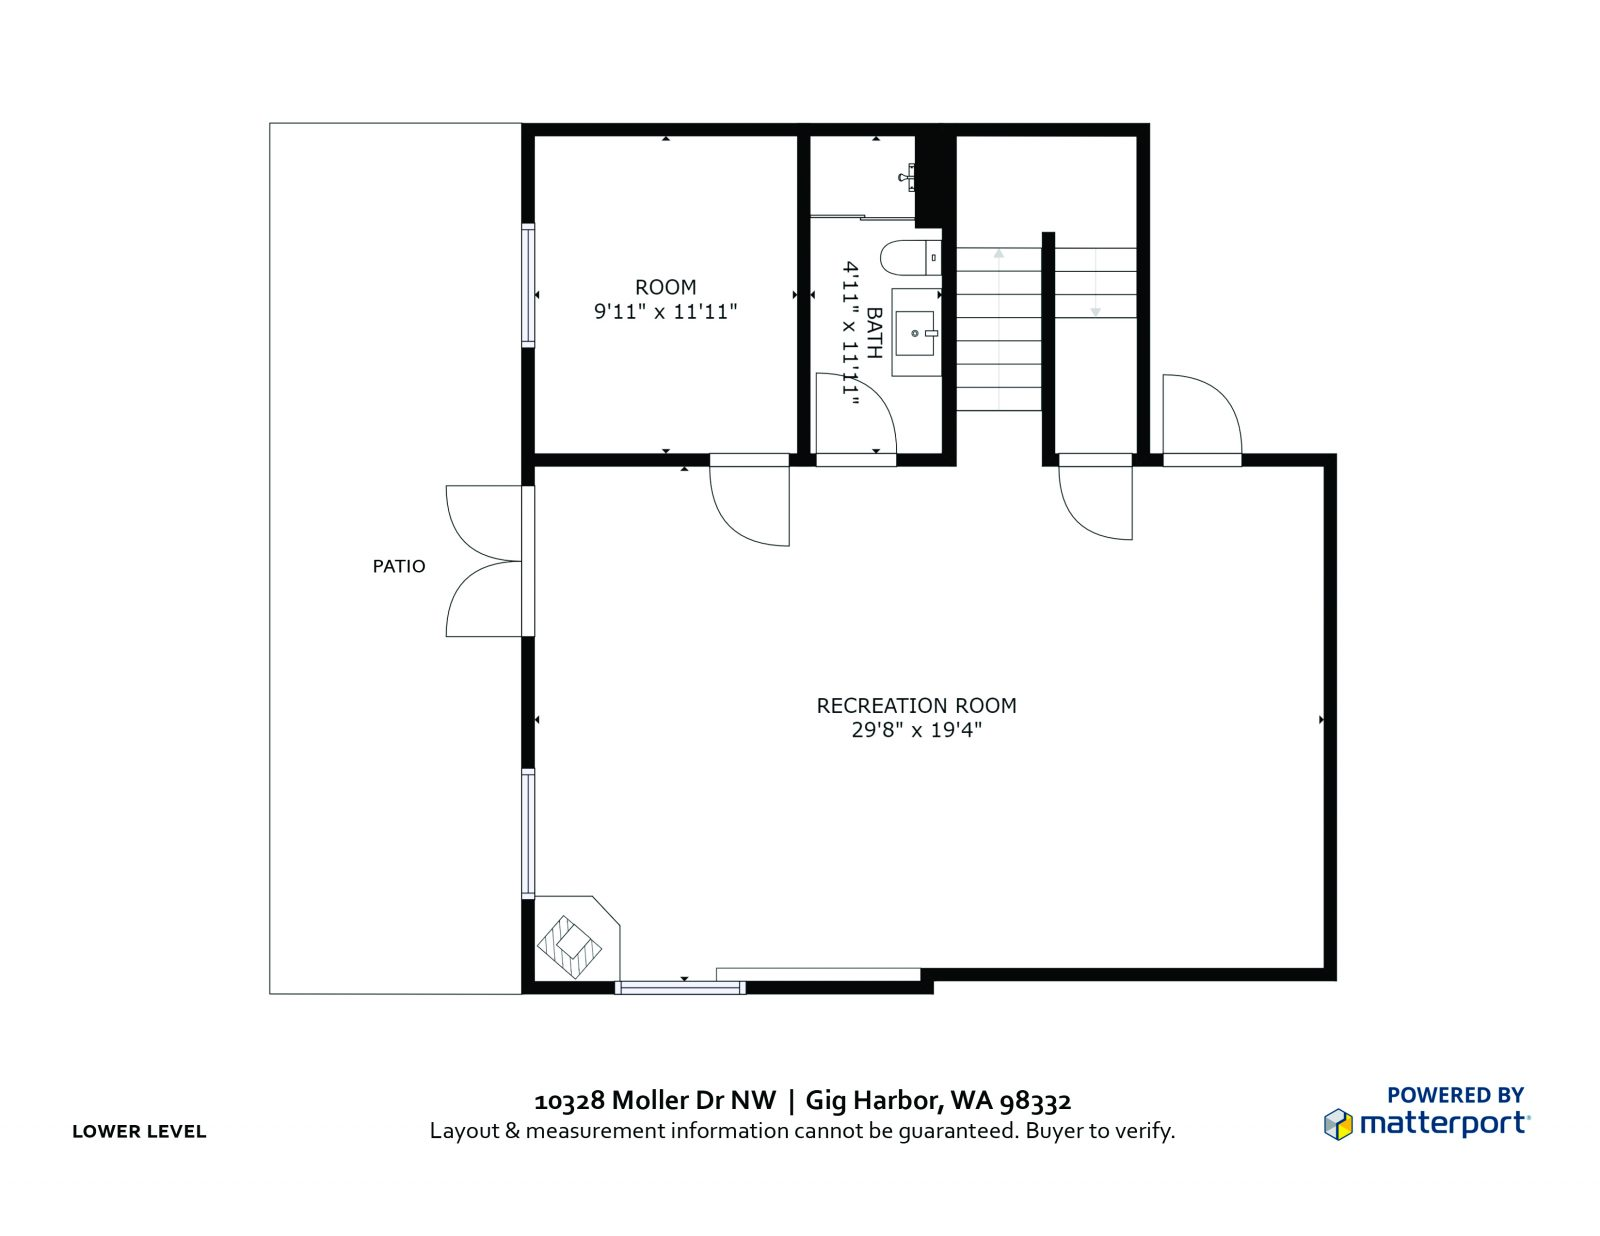 LOWER LEVEL : 10328 Moller Dr NW, Gig Harbor WA 98332